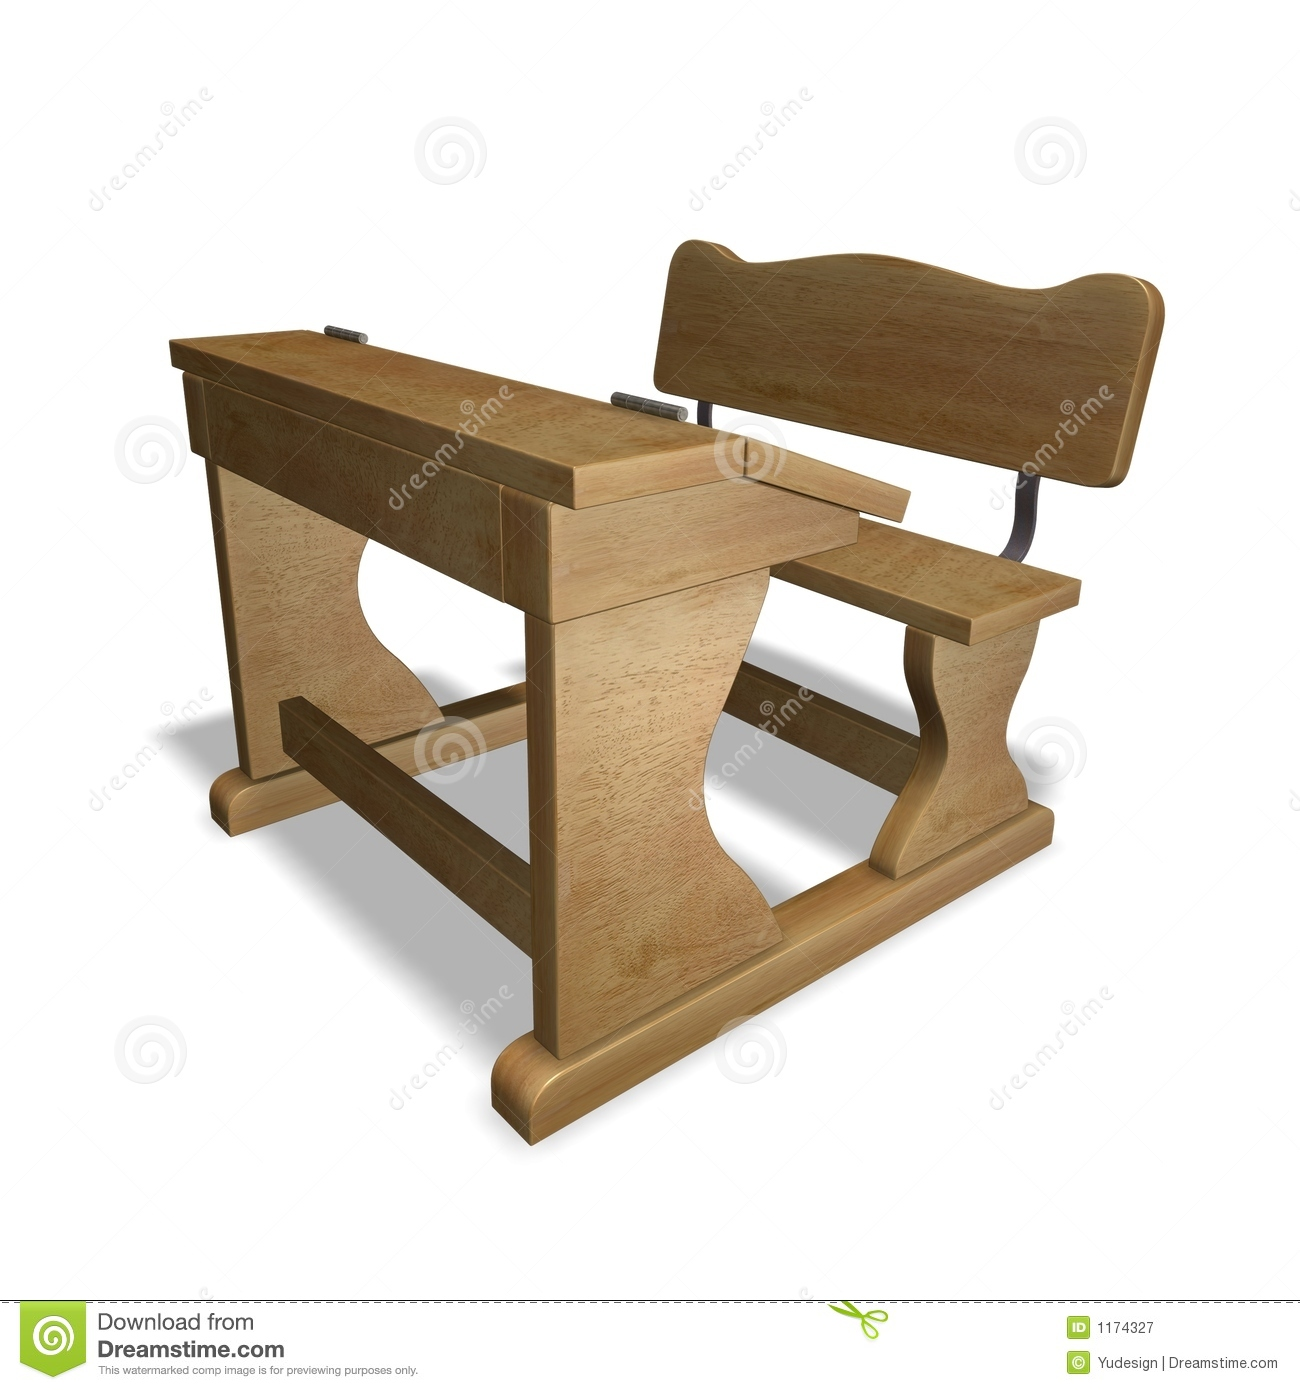 Old School Bench Royalty Free Stock Photography Image  : old school bench 1174327  from www.dreamstime.com size 1300 x 1390 jpeg 365kB